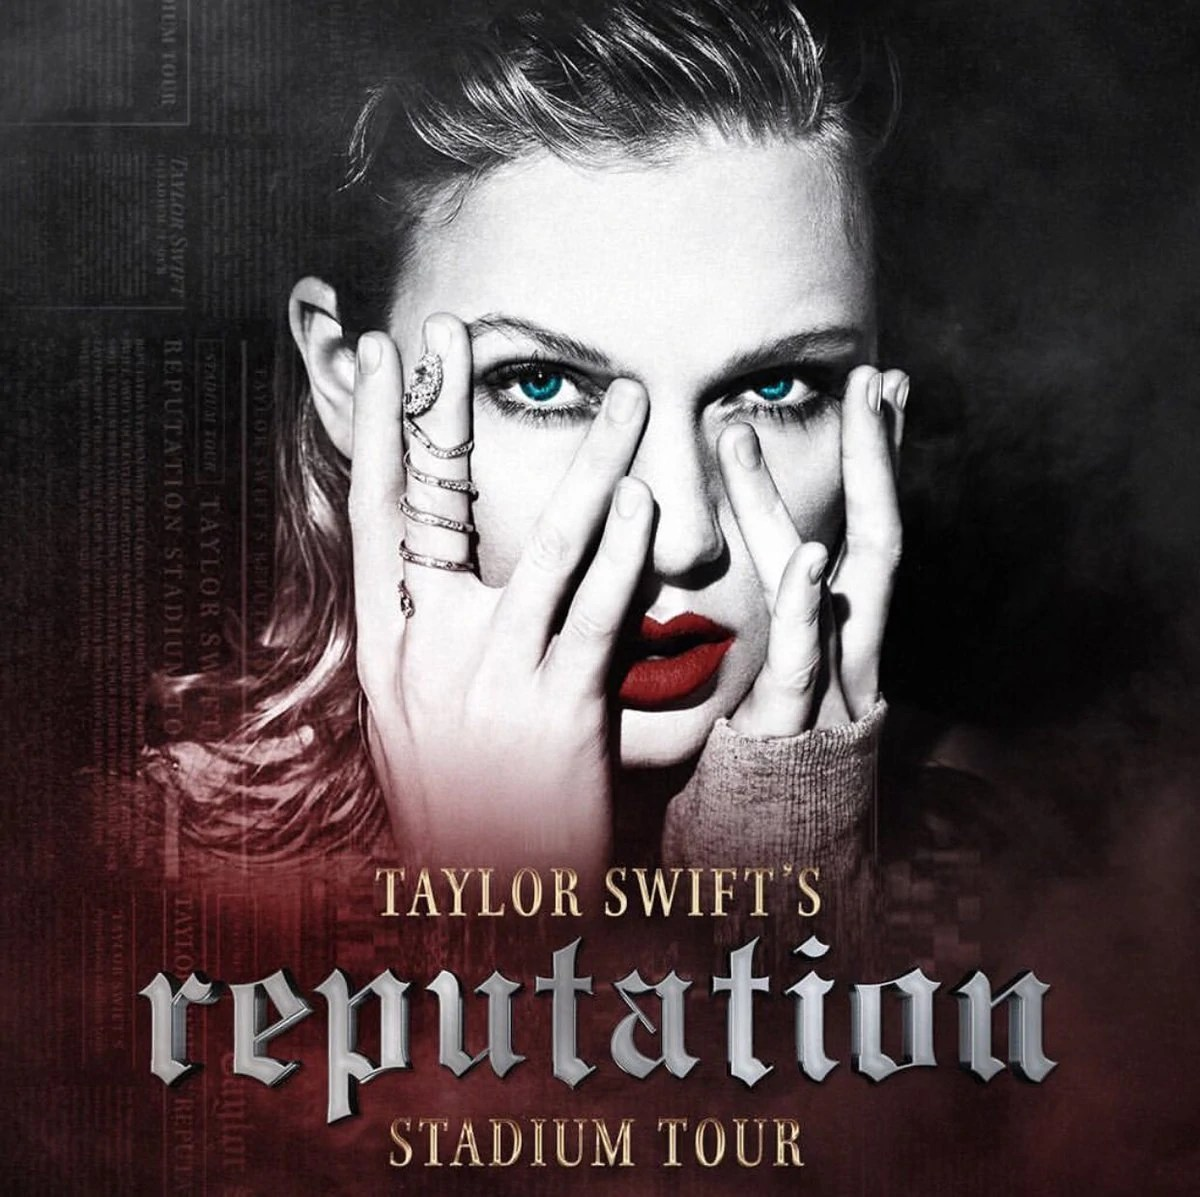 Bad Blood Quotes Taylor Swift Reputation Stadium Tour Taylor Swift Wiki Fandom Powered